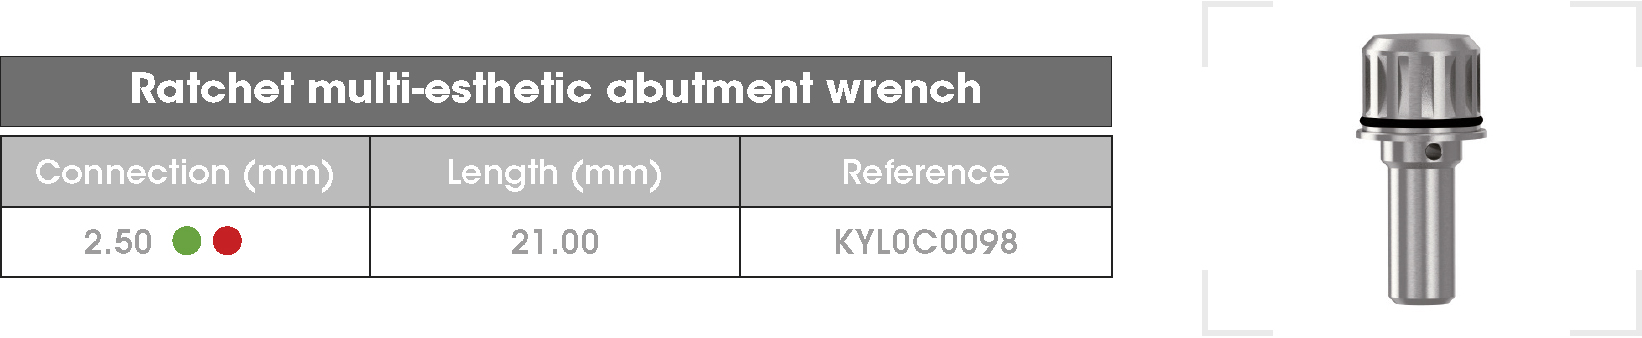 ME abutment wrench